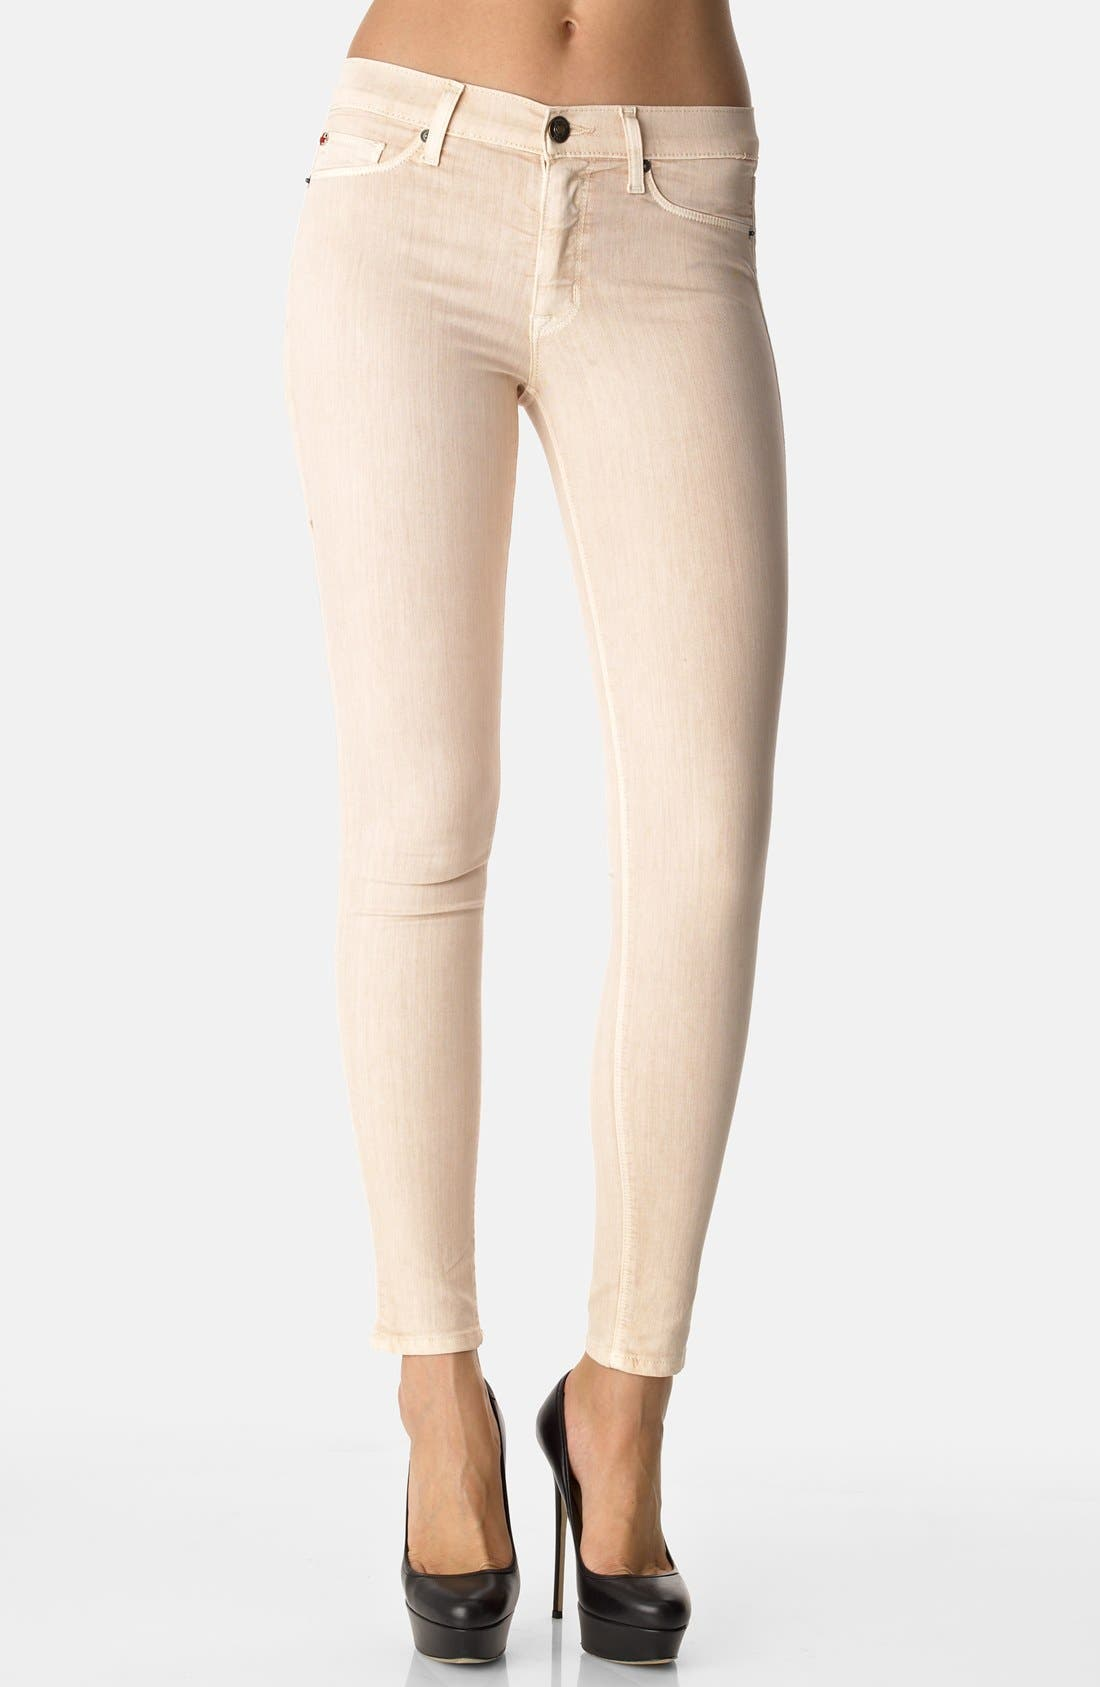 Alternate Image 1 Selected - Hudson Jeans 'Nico' Skinny Overdyed Jeans (Beige)